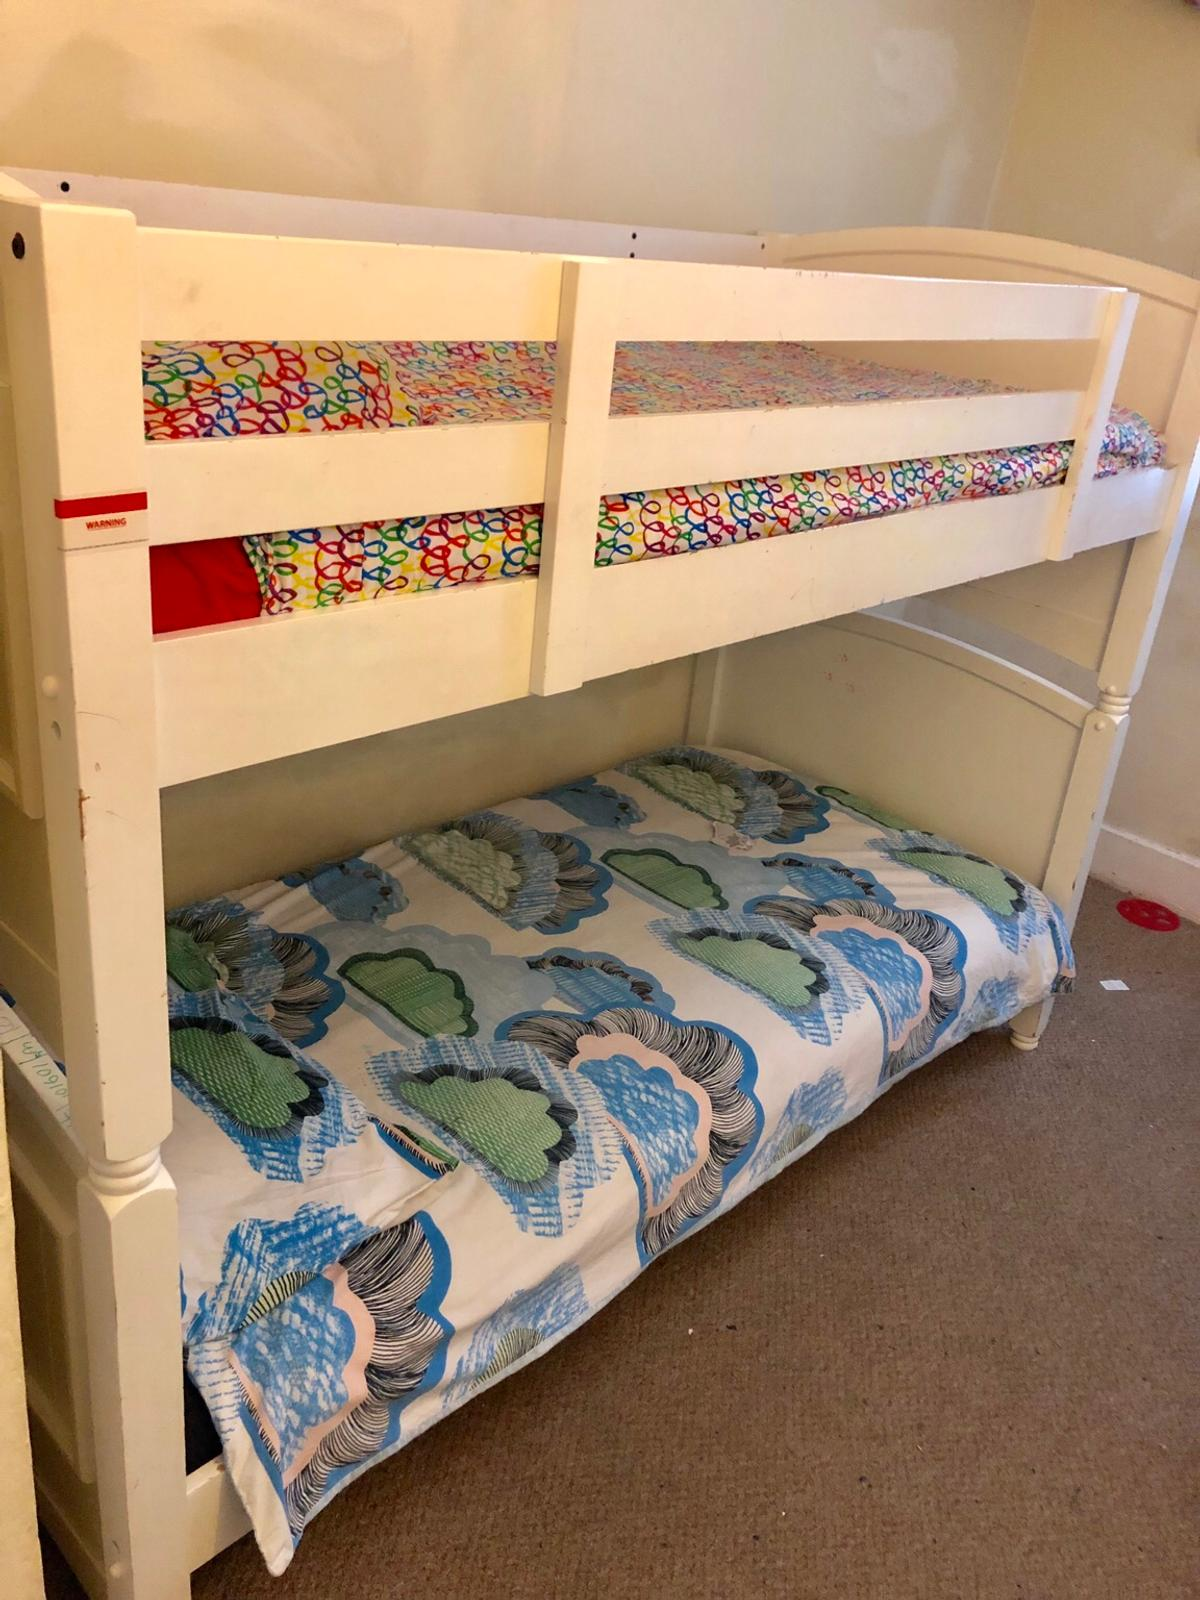 Picture of: Costco Hyder Colonial White Wooden Bunk Bed In Tw15 Spelthorne For 120 00 For Sale Shpock